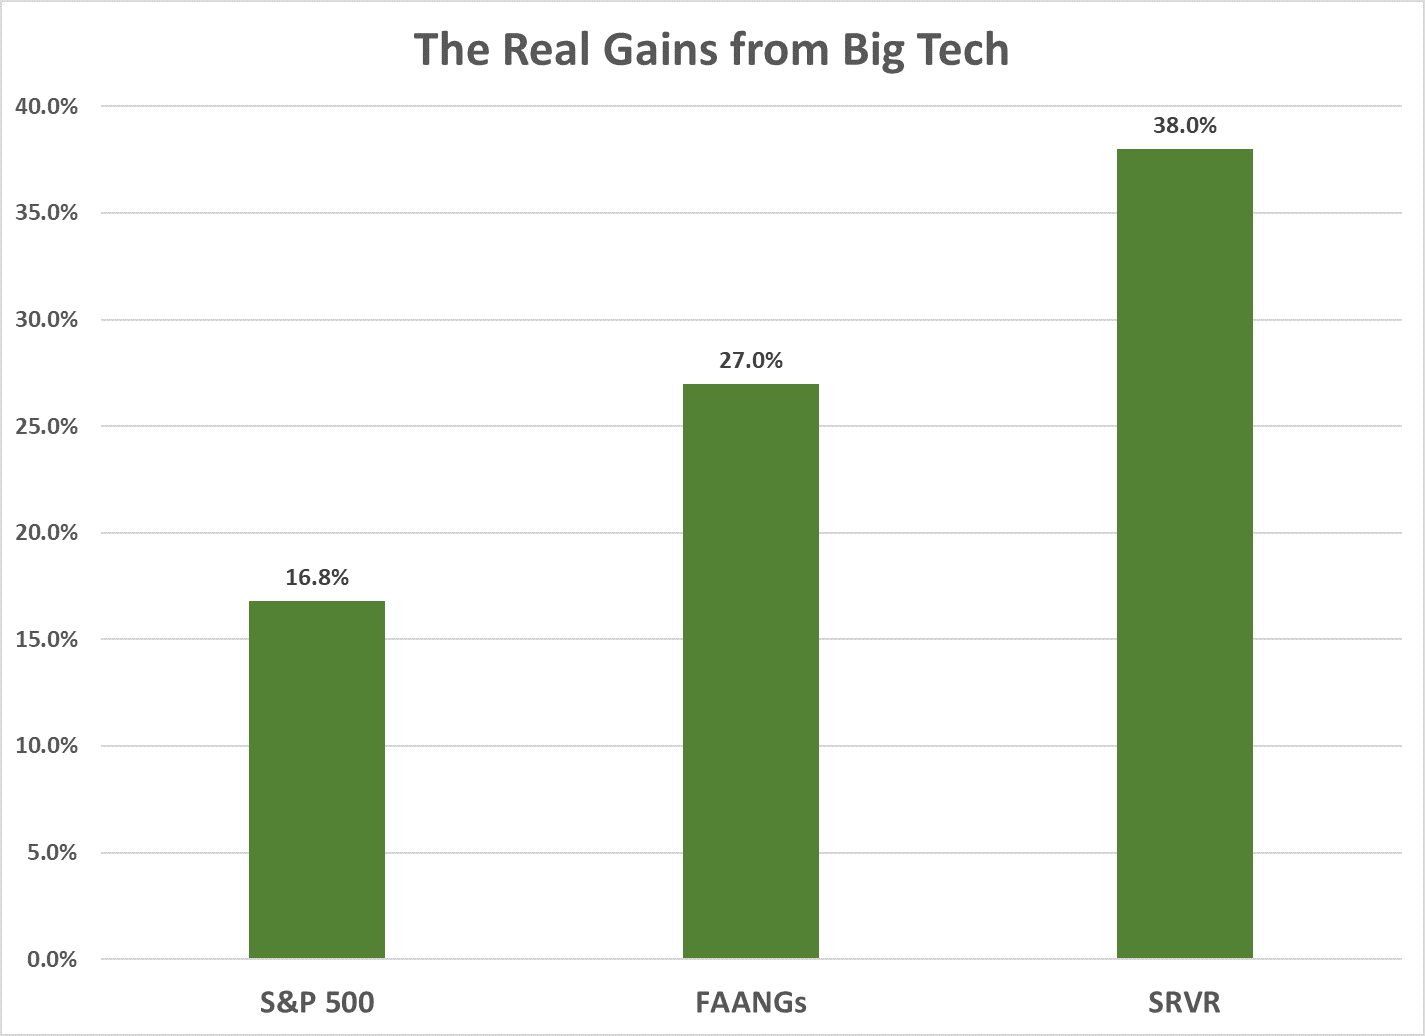 An index of companies that provide essential inputs to technology giants is at an all-time high. It's up 38% this year, trouncing the market and the FAANGs themselves.